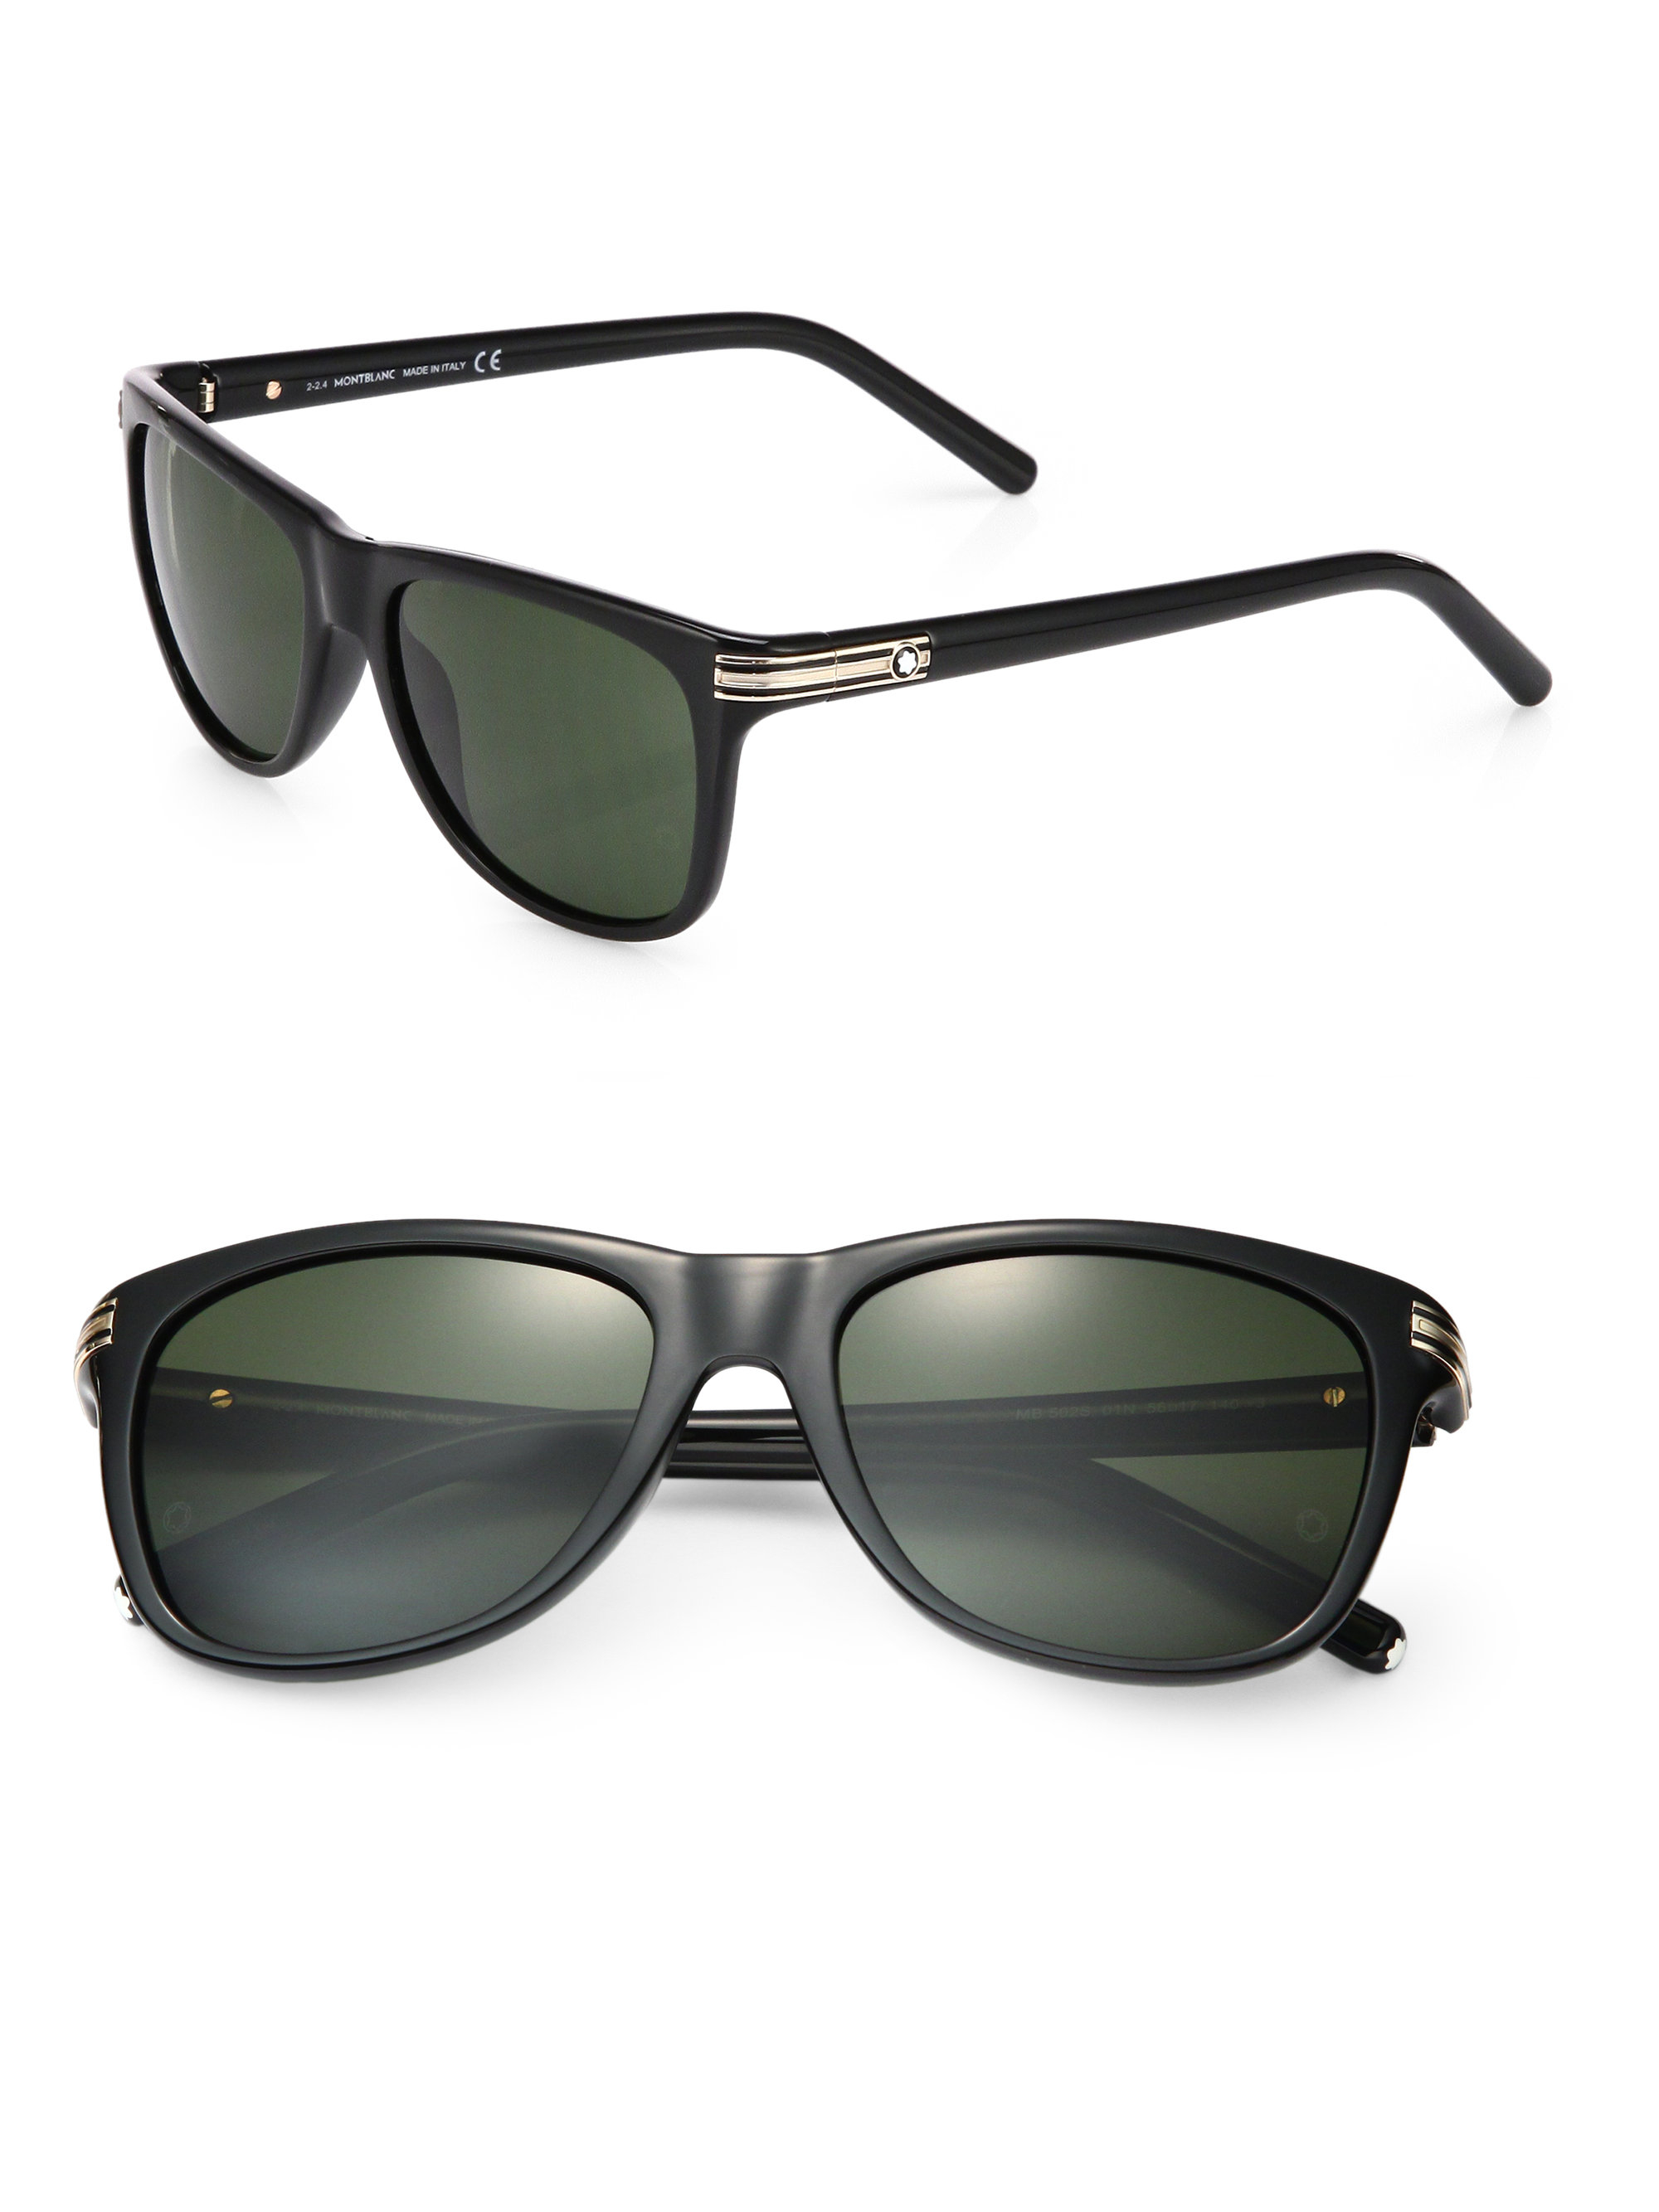 Montblanc 56mm Injected Square-shaped Sunglasses in Black ...